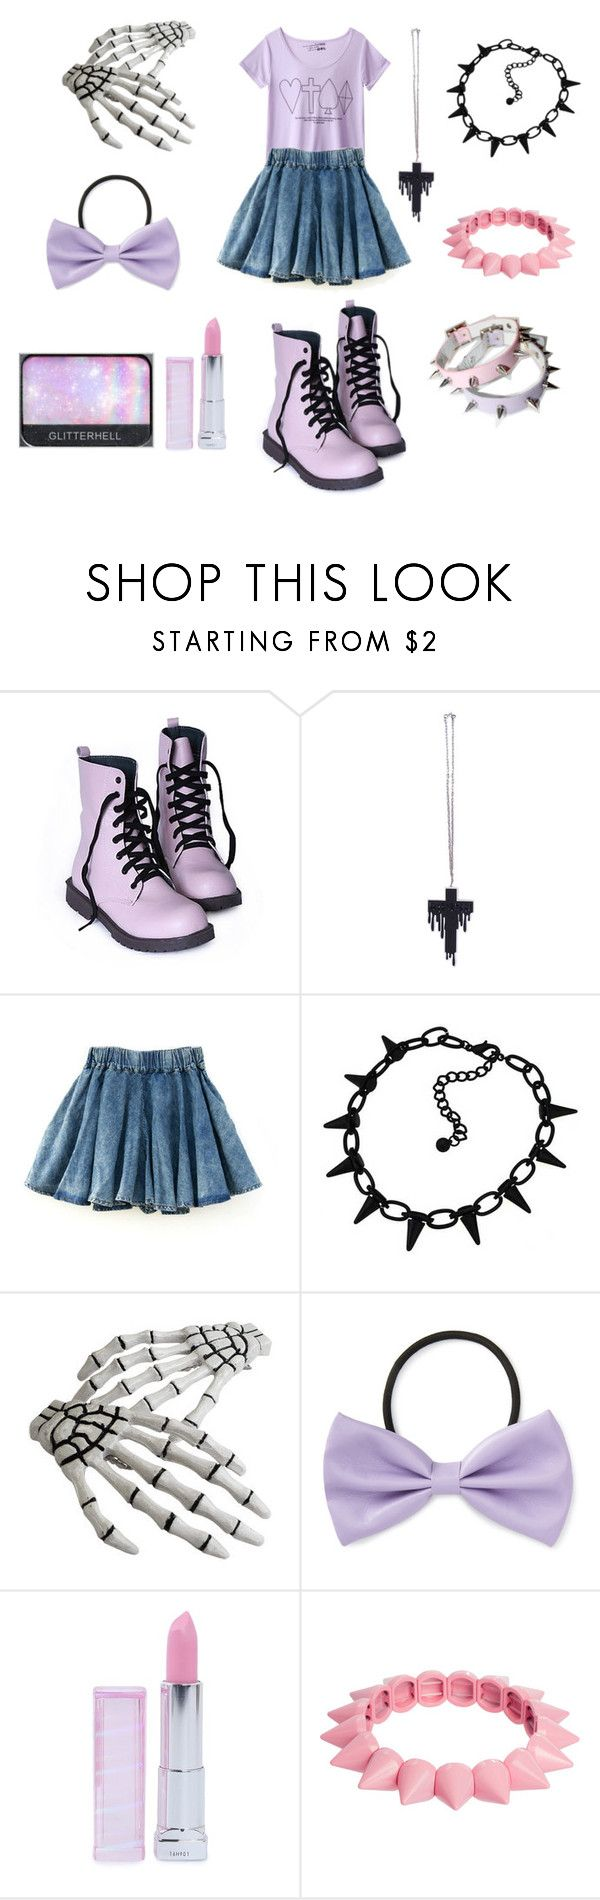 """Little creepy girl"" by sweetpasteldream ❤ liked on Polyvore featuring Clips, Forever 21, NARS Cosmetics, Maybelline and ASOS"